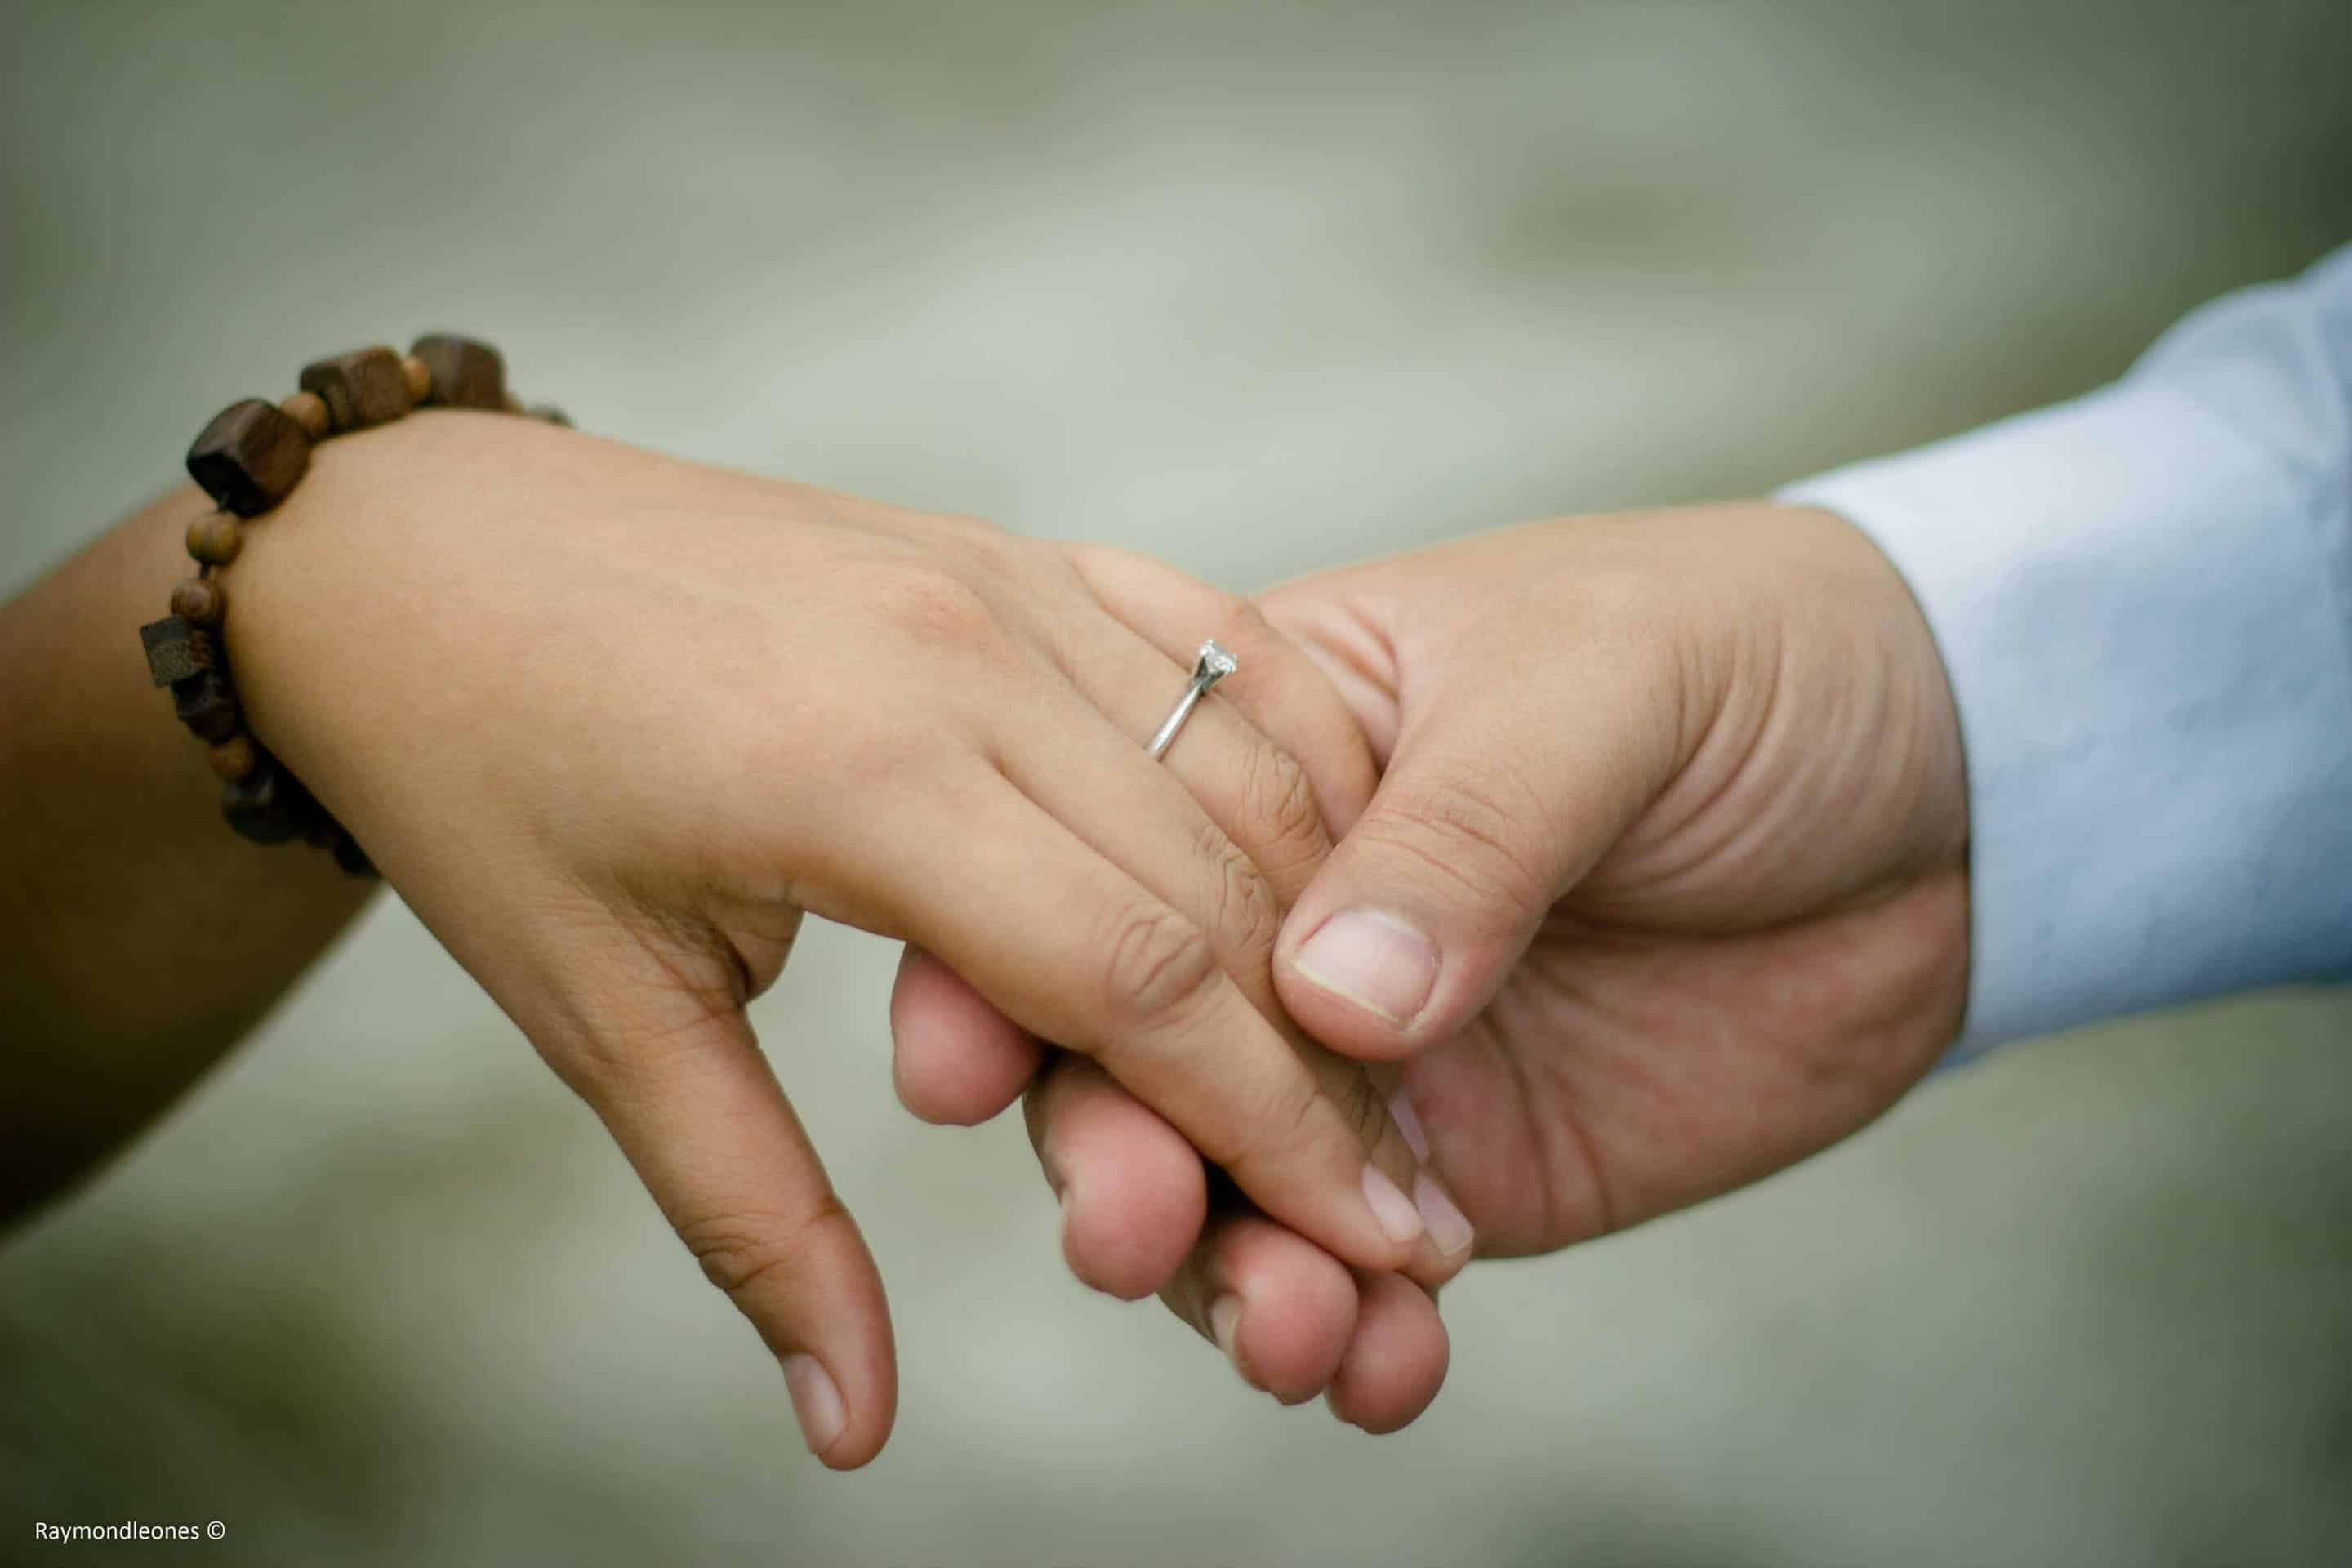 close-up picture of two hands holding each other with a visible engagement ring